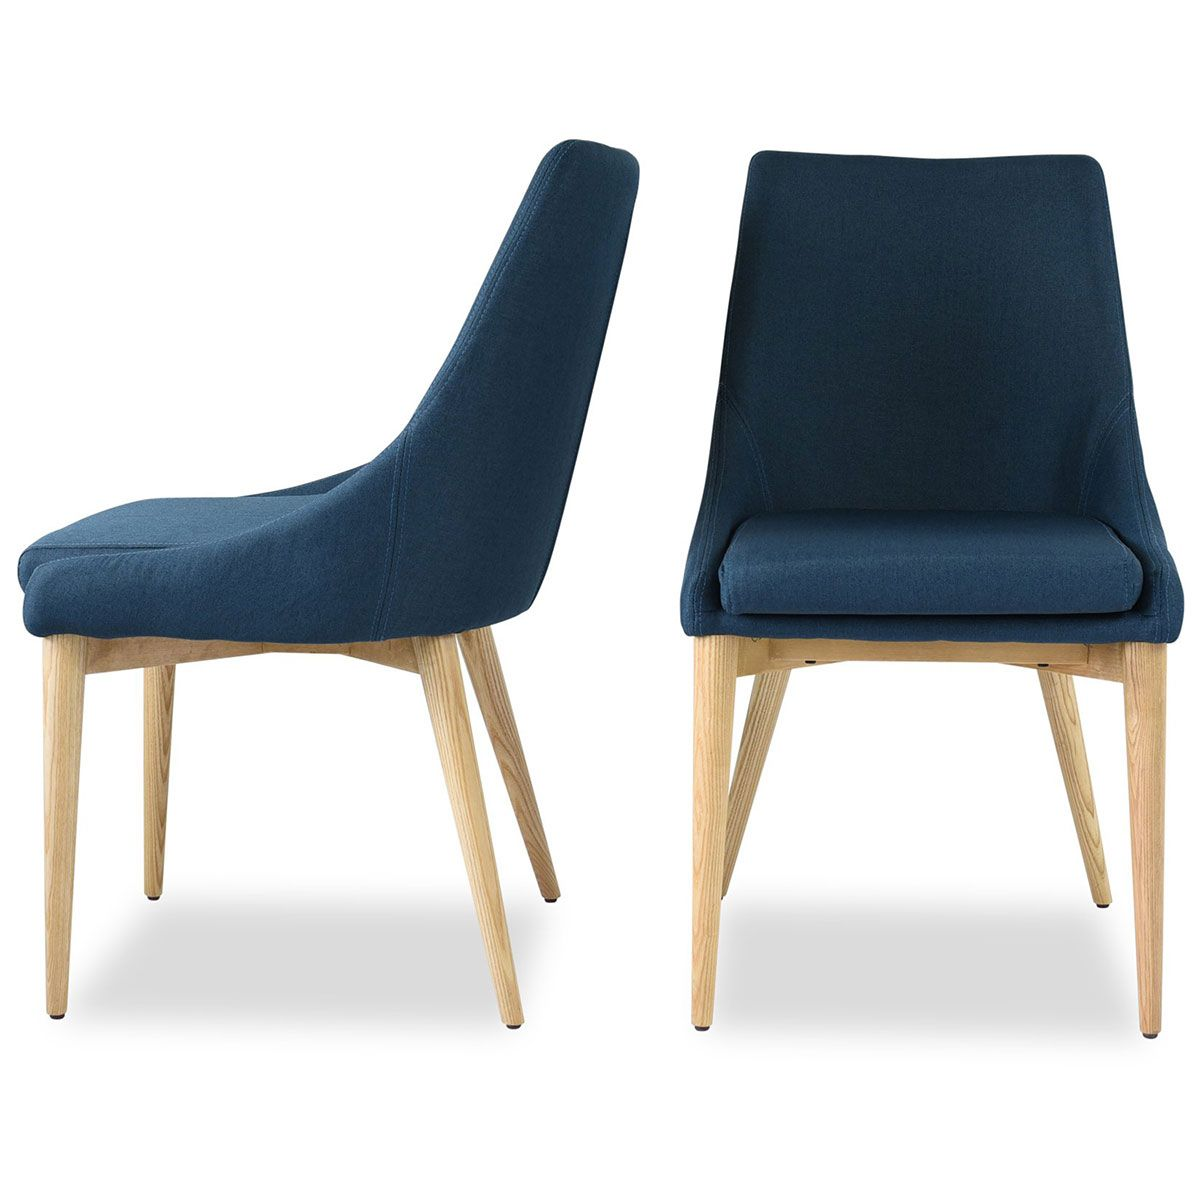 Edloe Finch Ef Zx Dc005b Jessica Dining Chair Blue Fabric On Oak Legs Set Of 2 Dining Chairs Contemporary Dining Chairs Upholstered Dining Chairs